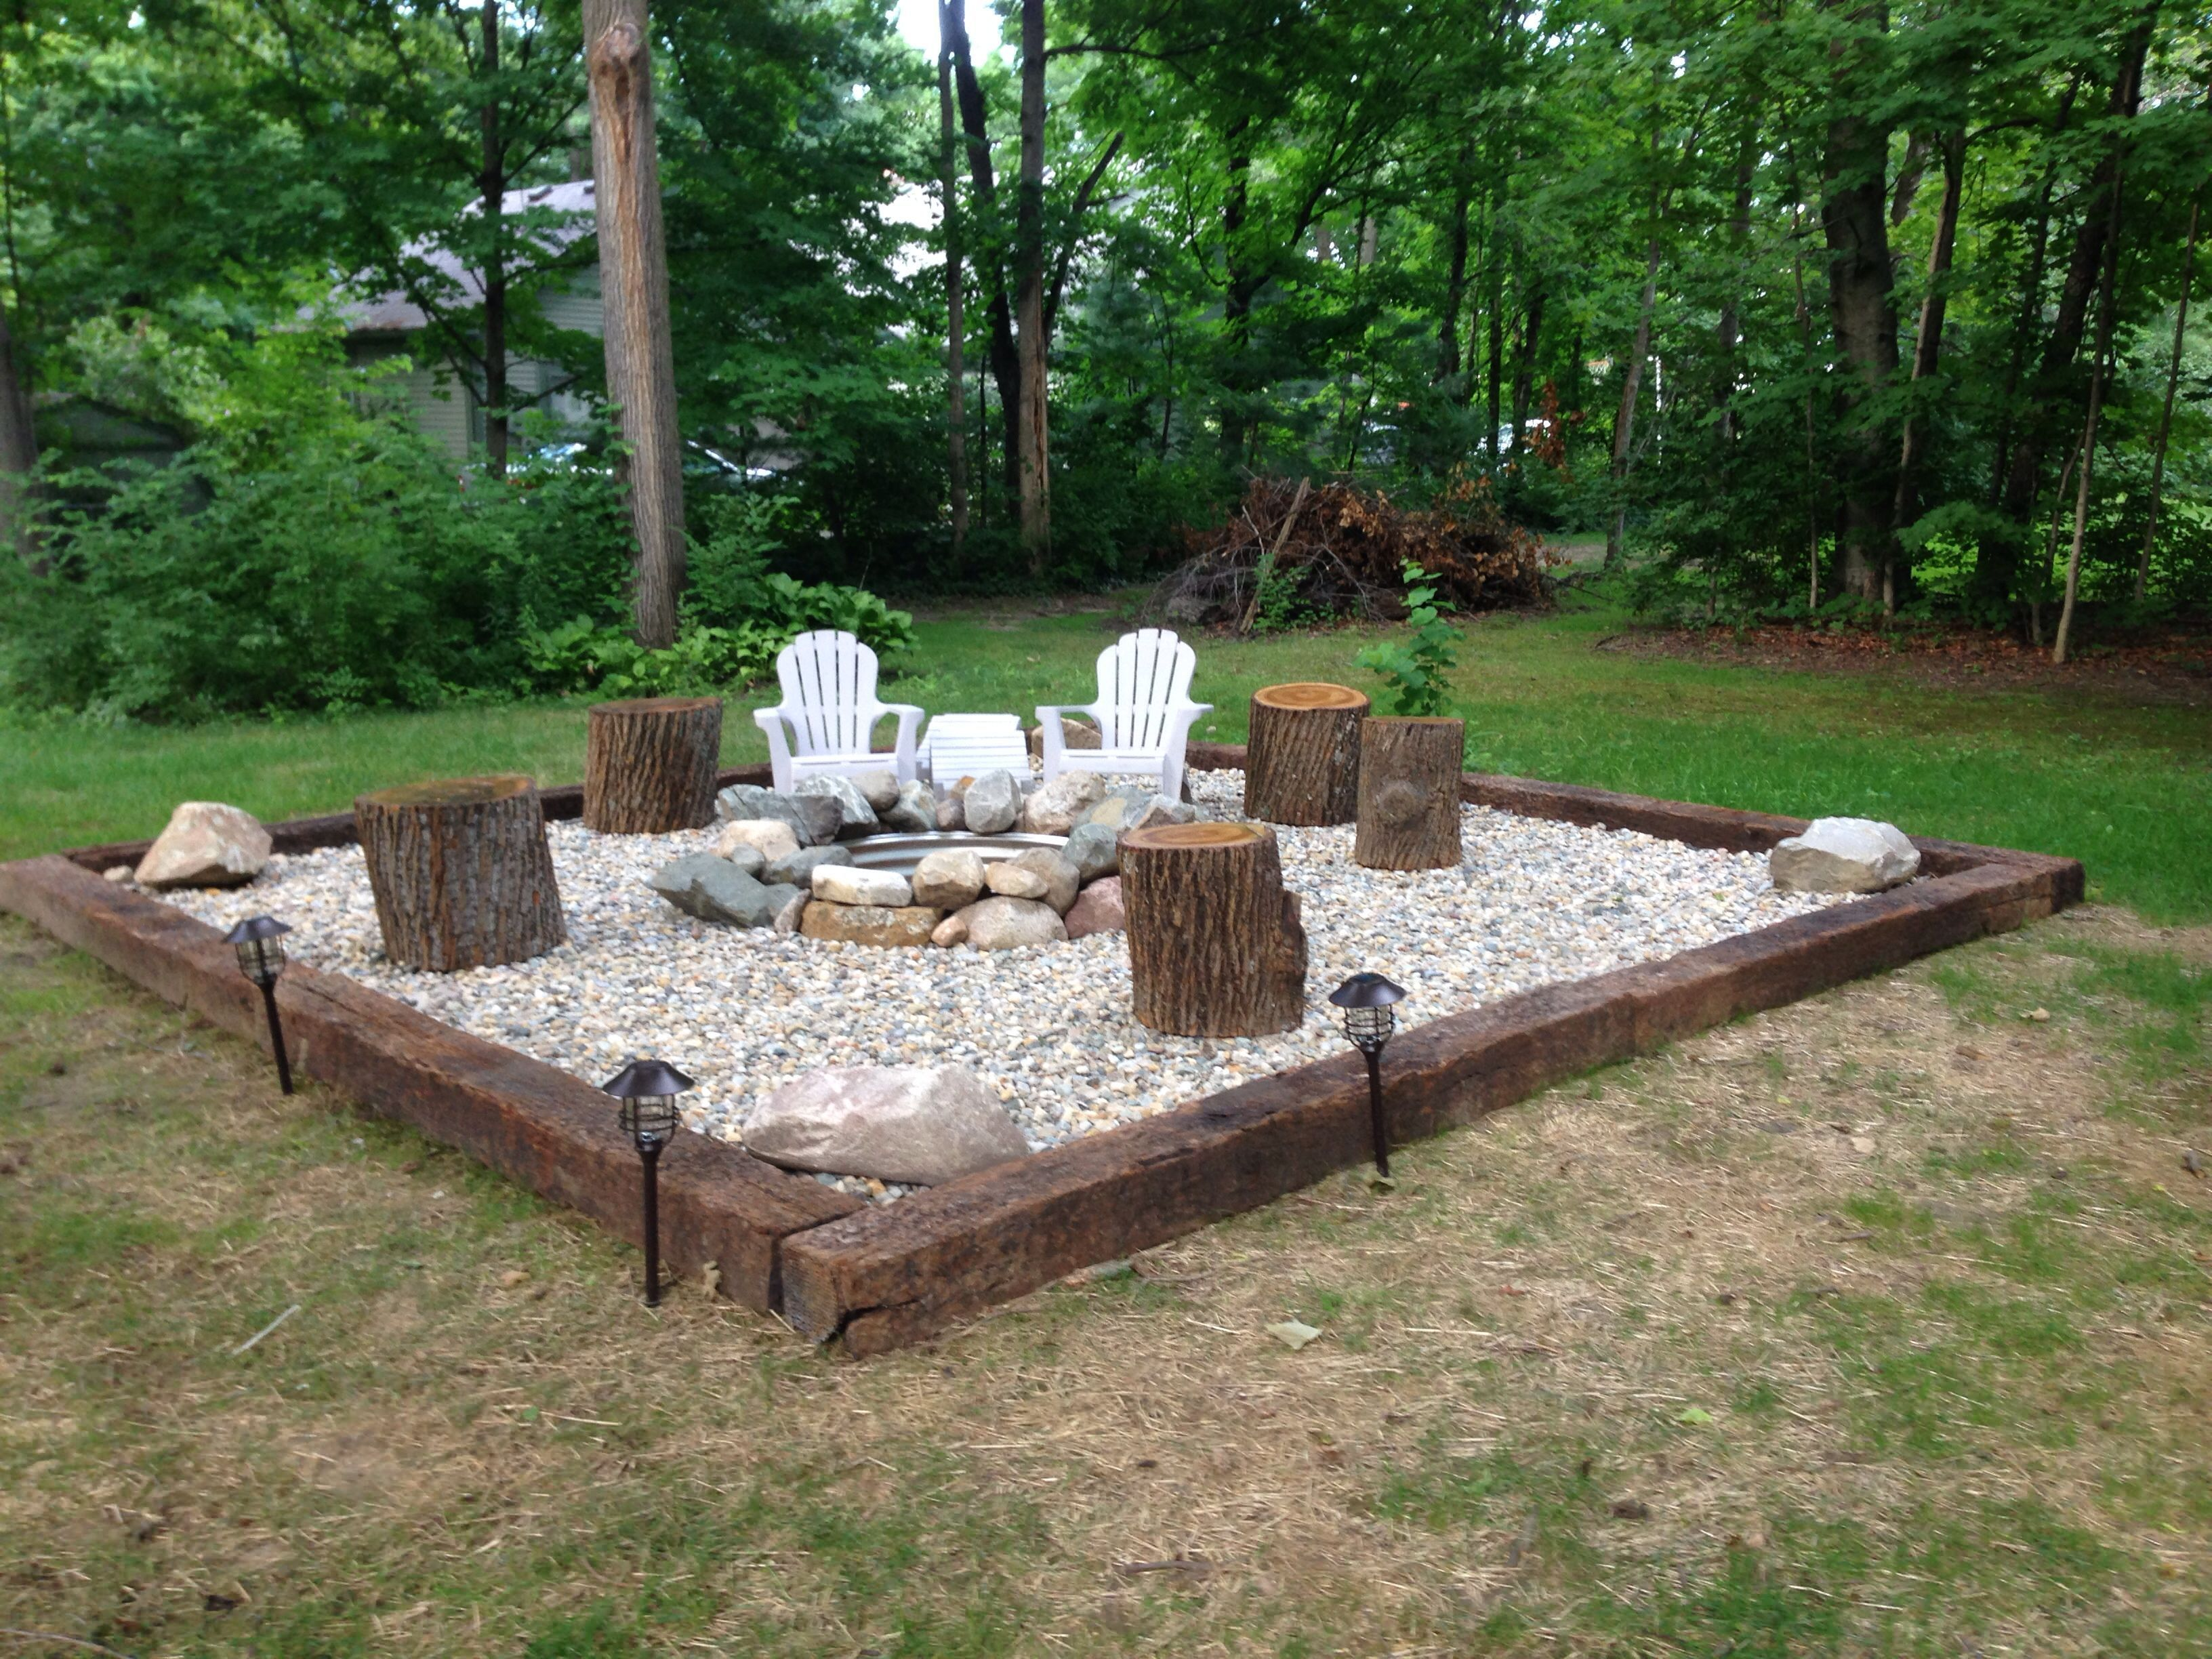 Fire Pit Seating Ideas 148 Backyard Firepit Area Rustic Fire Pits Fire Pit Seating